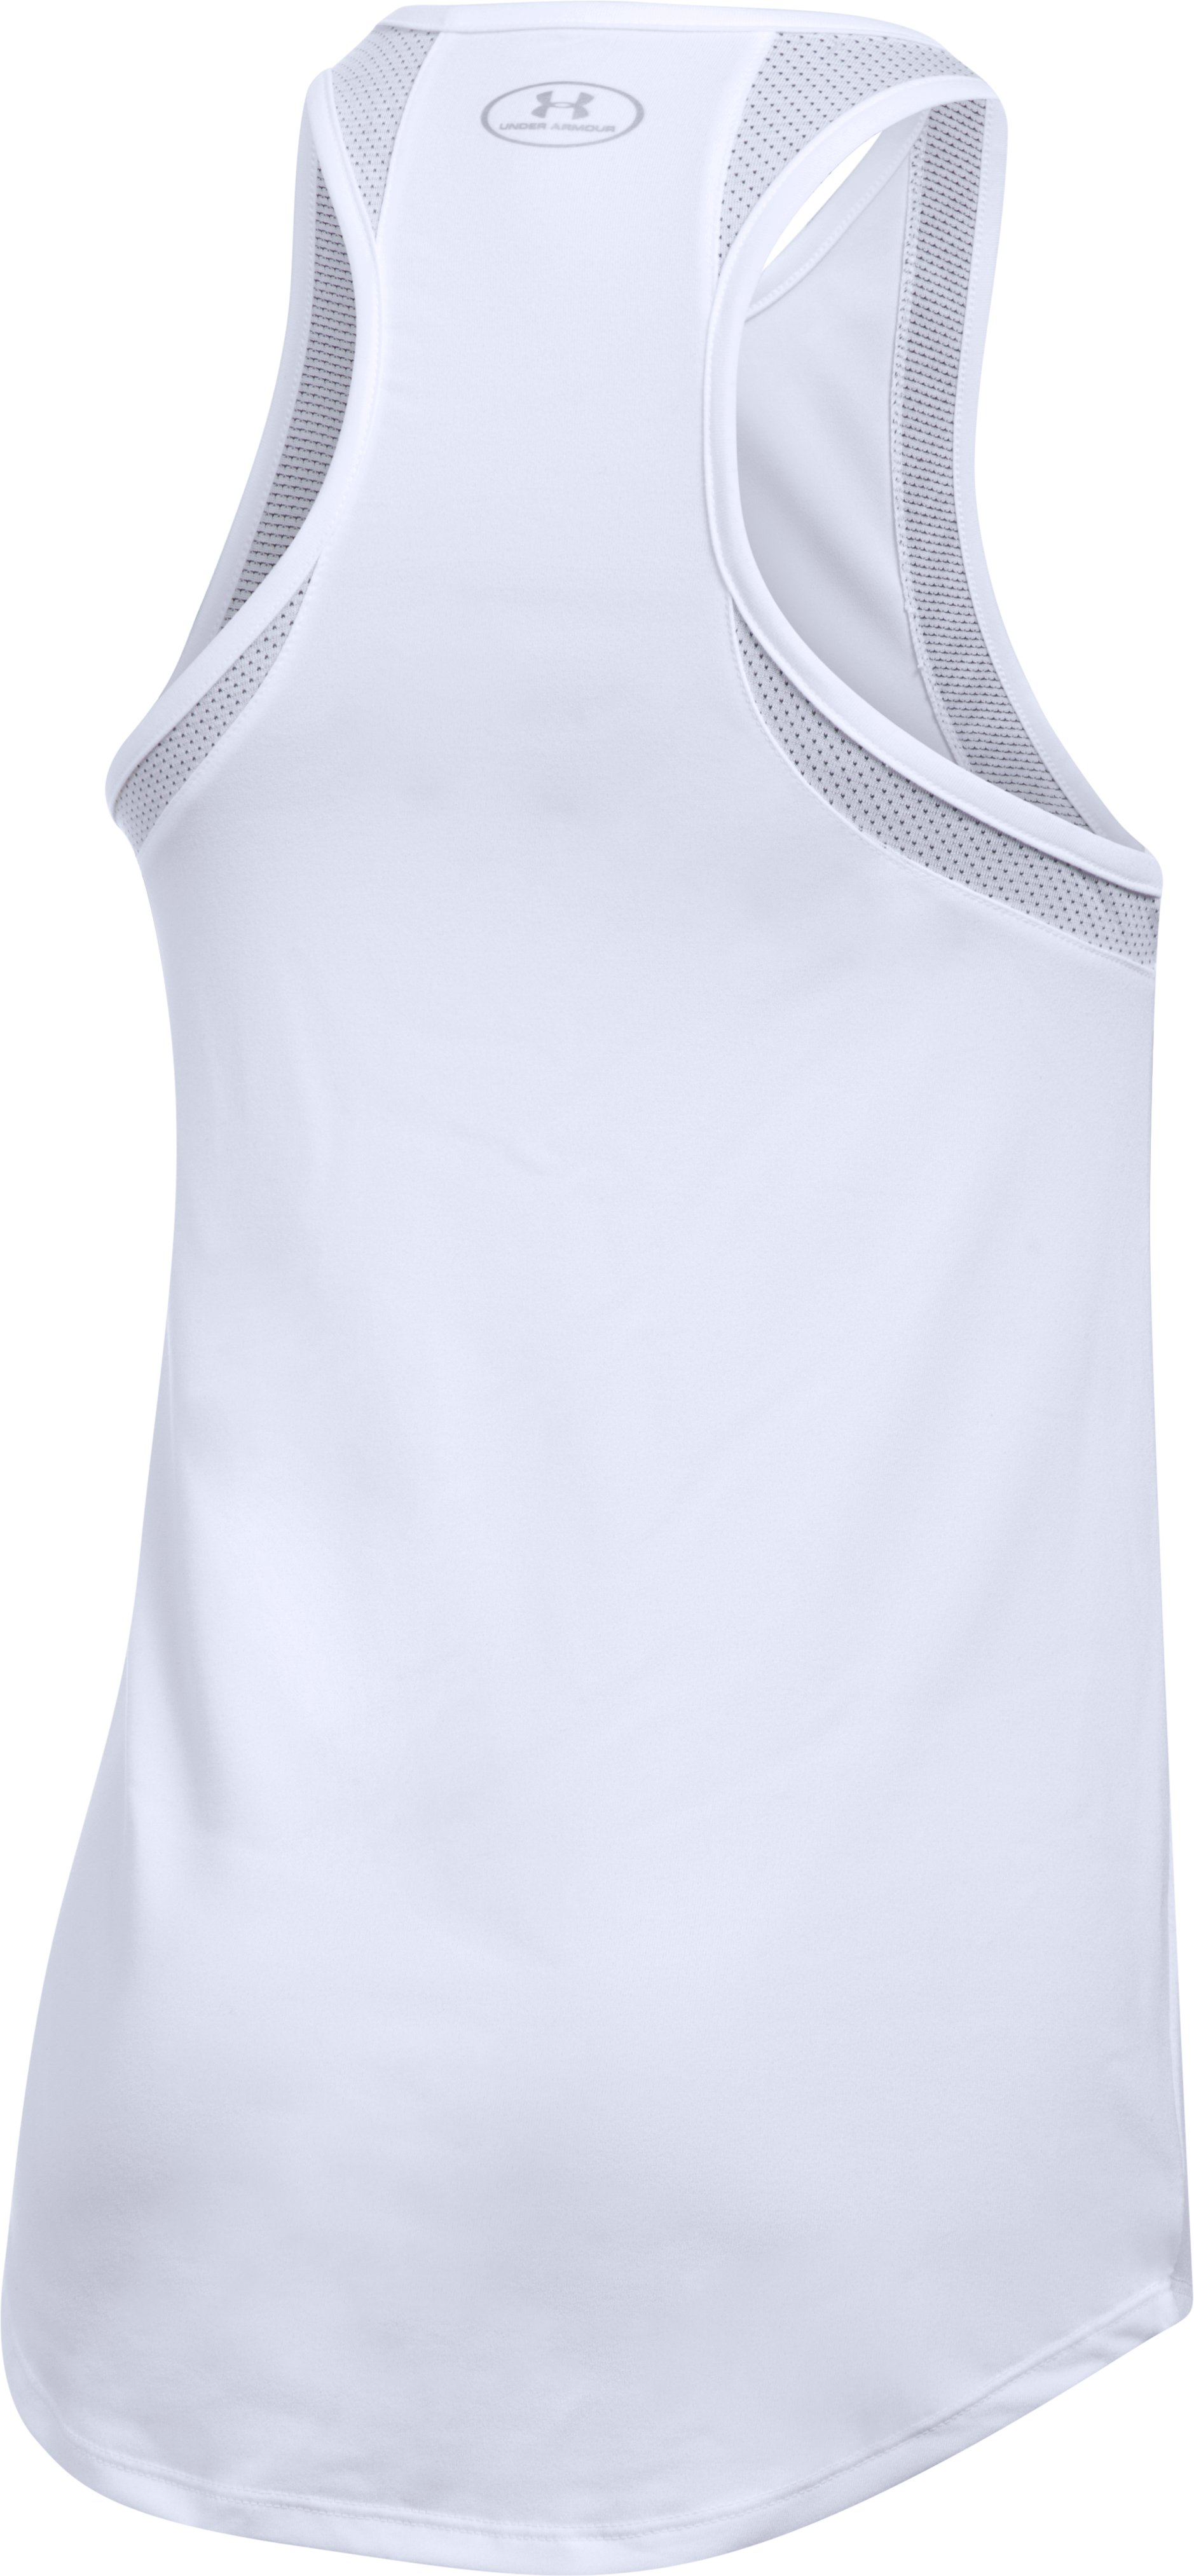 Women's Los Angeles Dodgers UA Tech™ Mesh Tank, White,